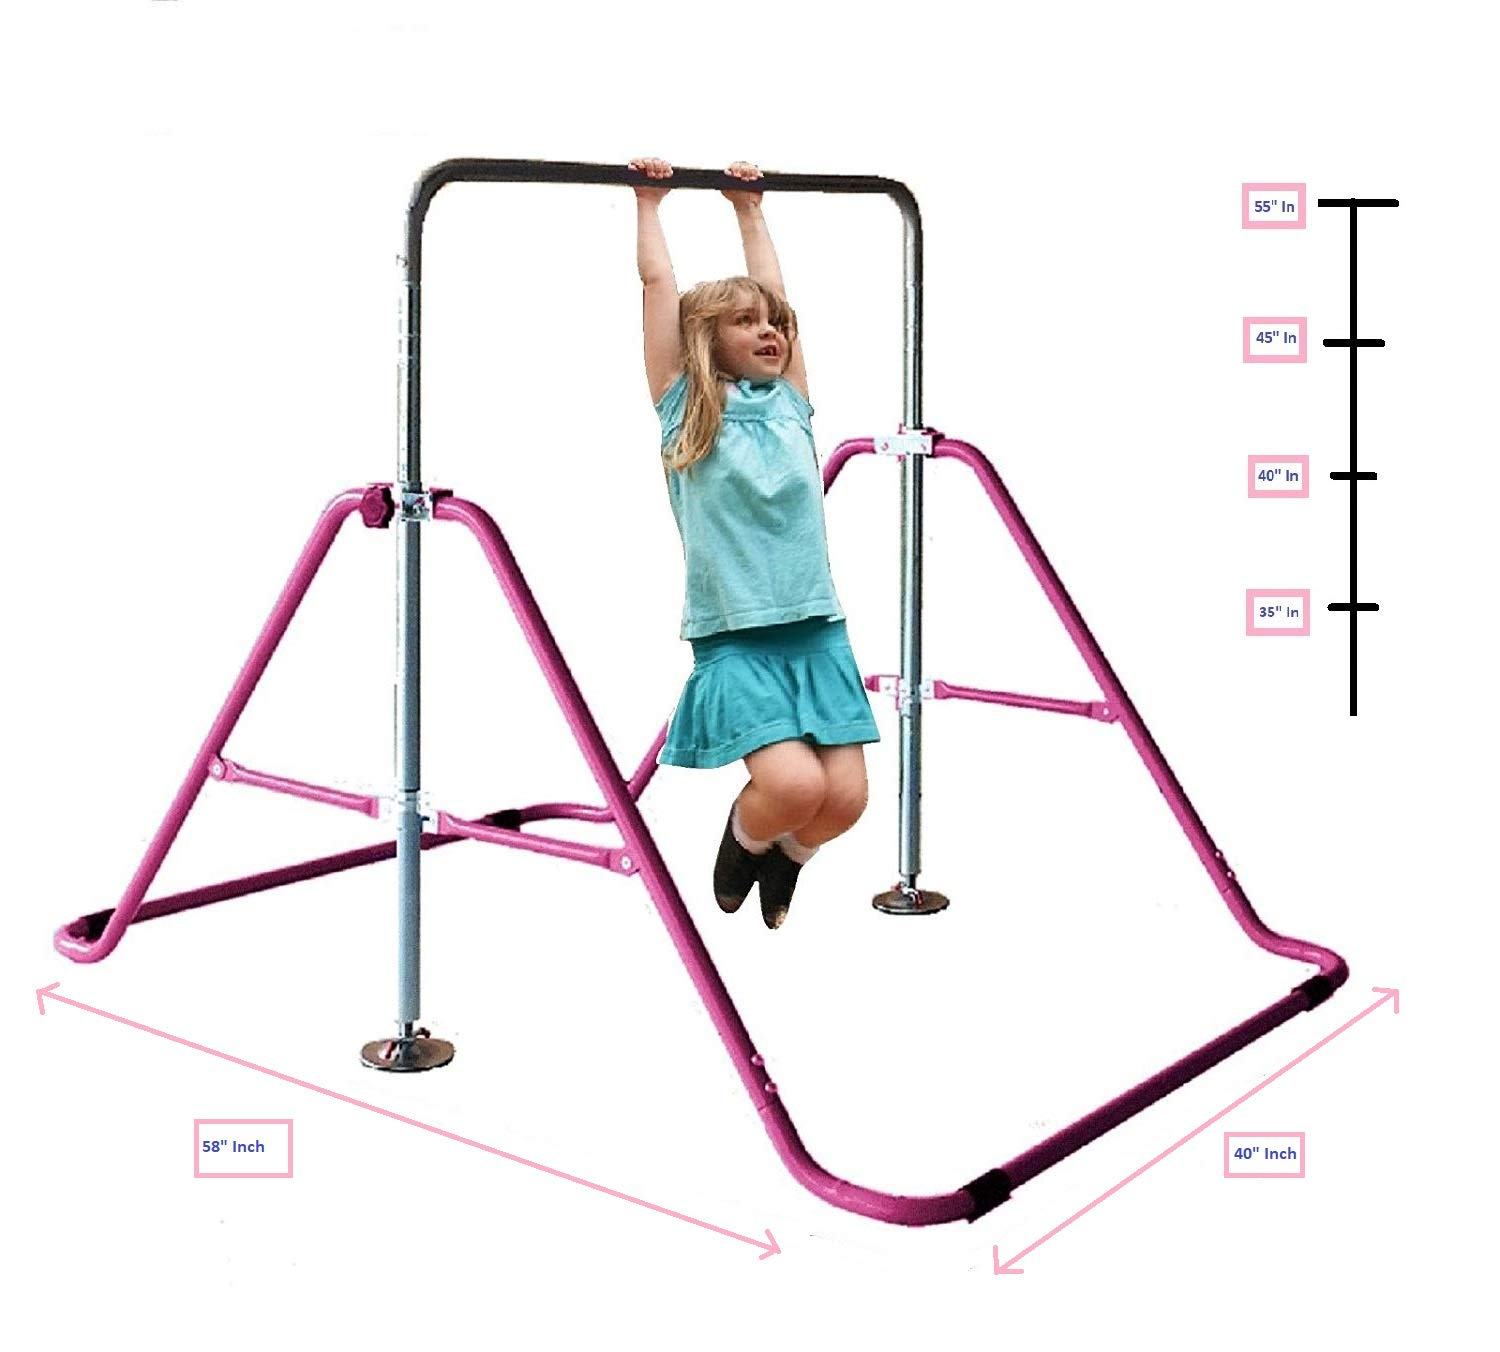 KidsJungle Kids Monkey Bars Jungle Gym Climbing Tower Gymnastics Playground Expandable Junior Training Pink by KidsJungle